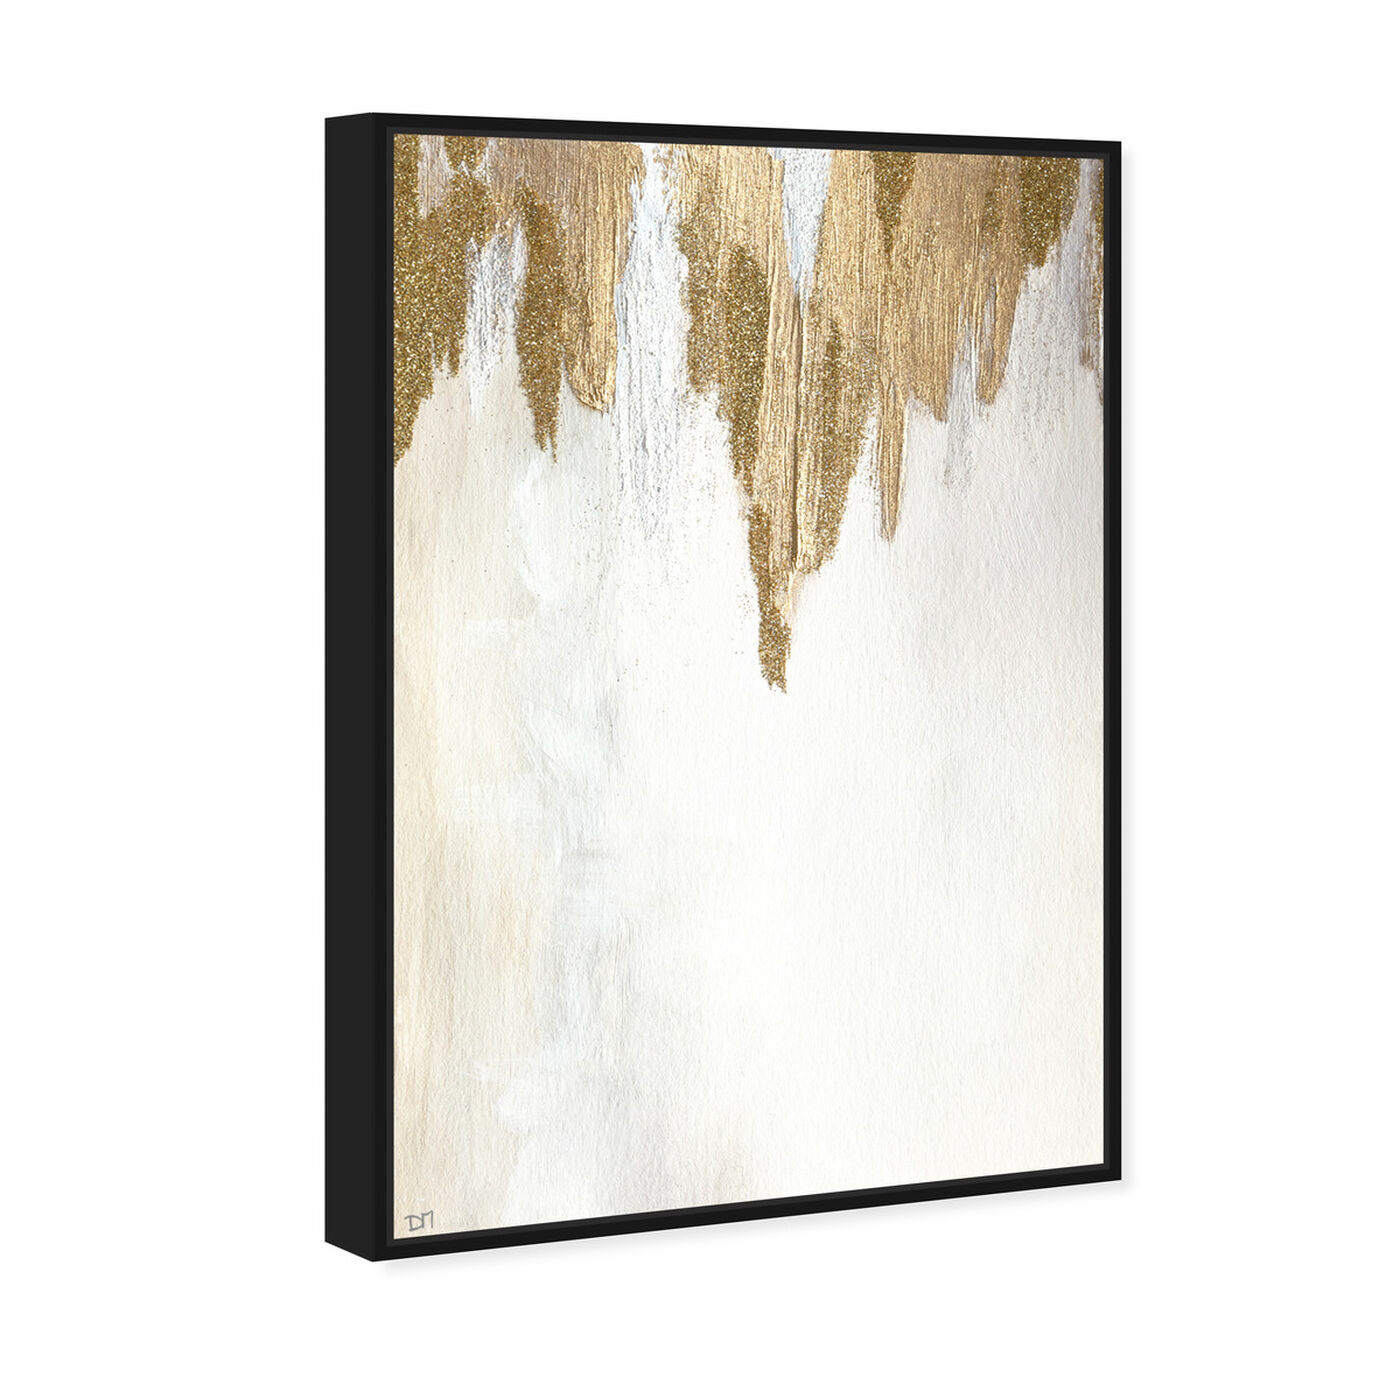 Angled view of Very Golden featuring abstract and paint art.